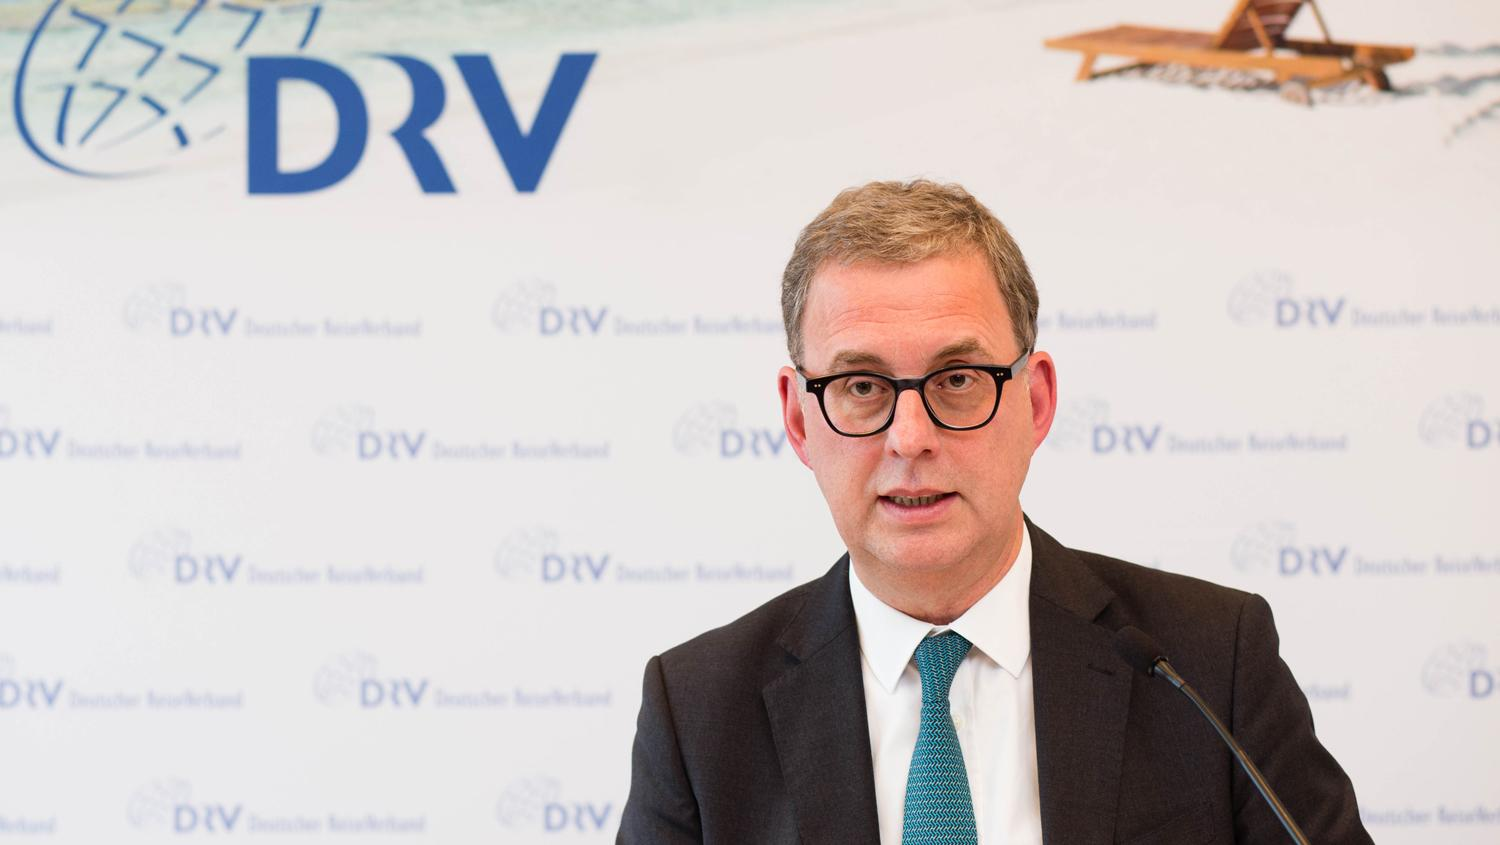 Norbert Fiebig was overwhelmingly re-elected as DRV president.